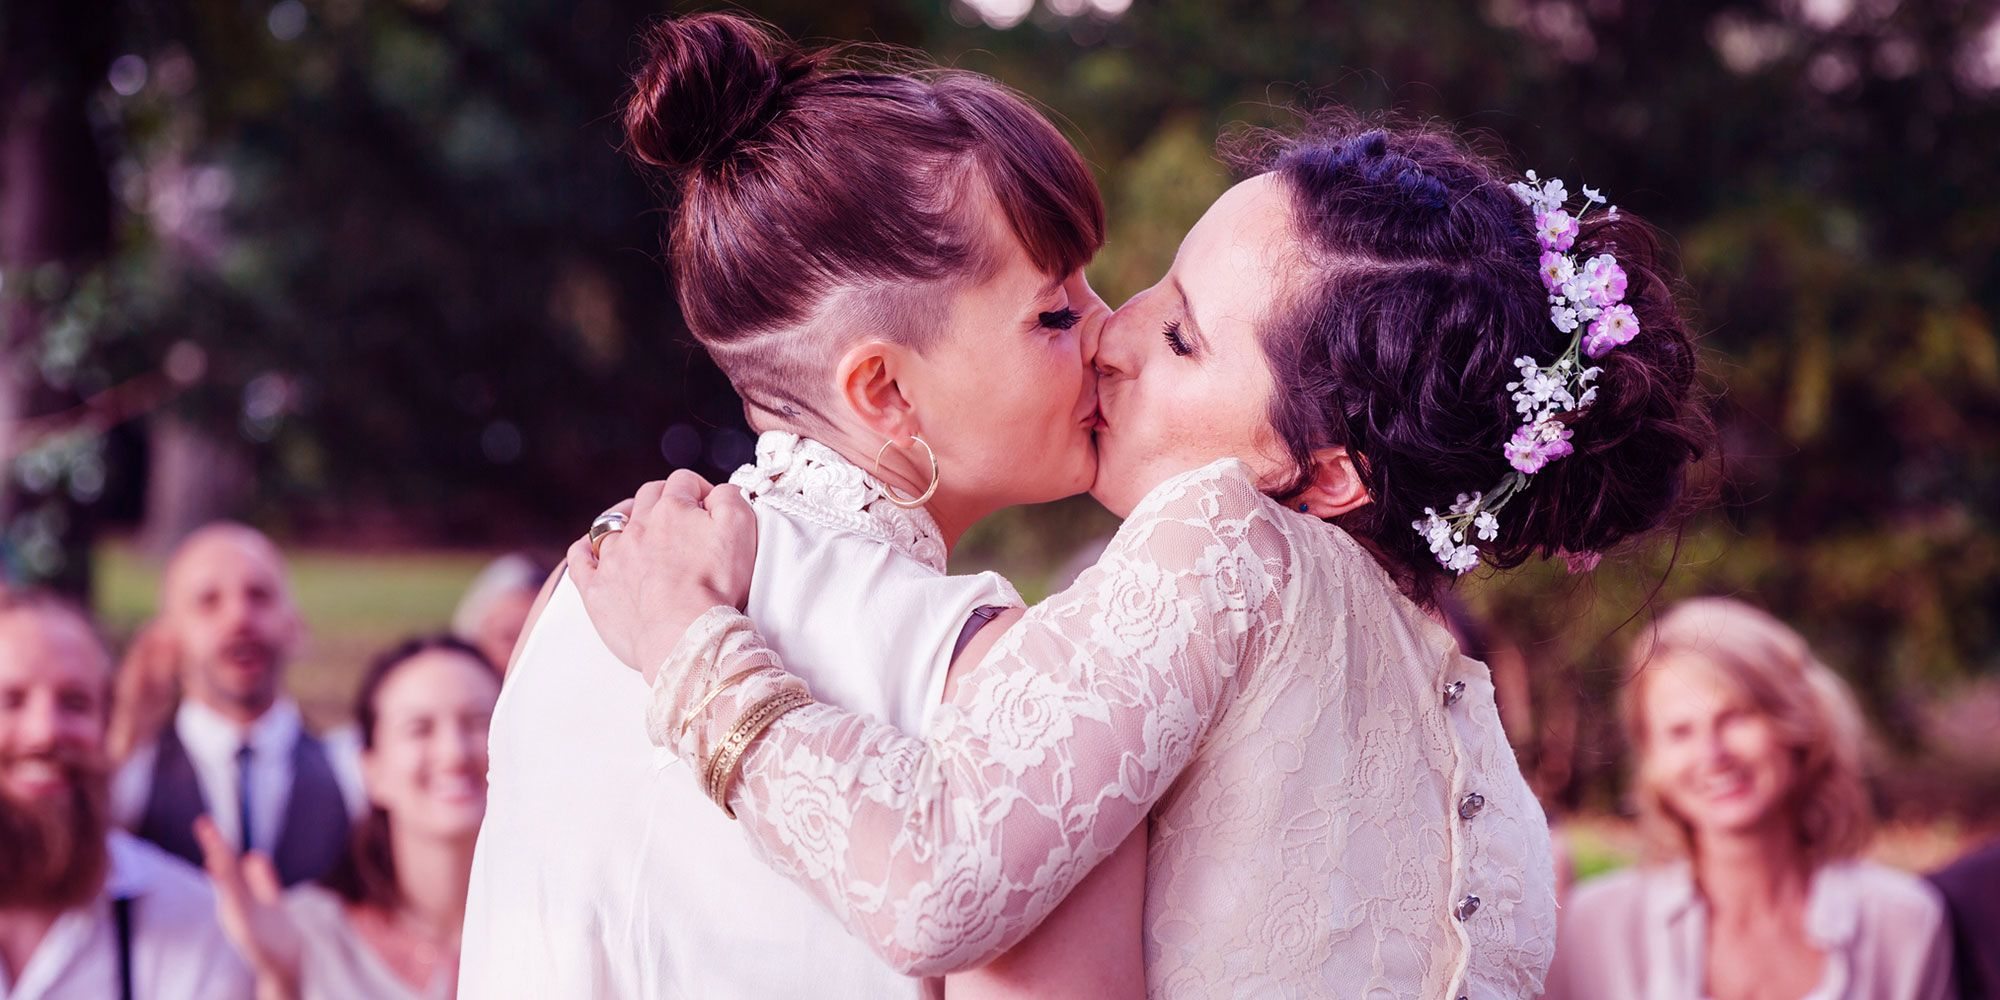 Bisexual female relationships